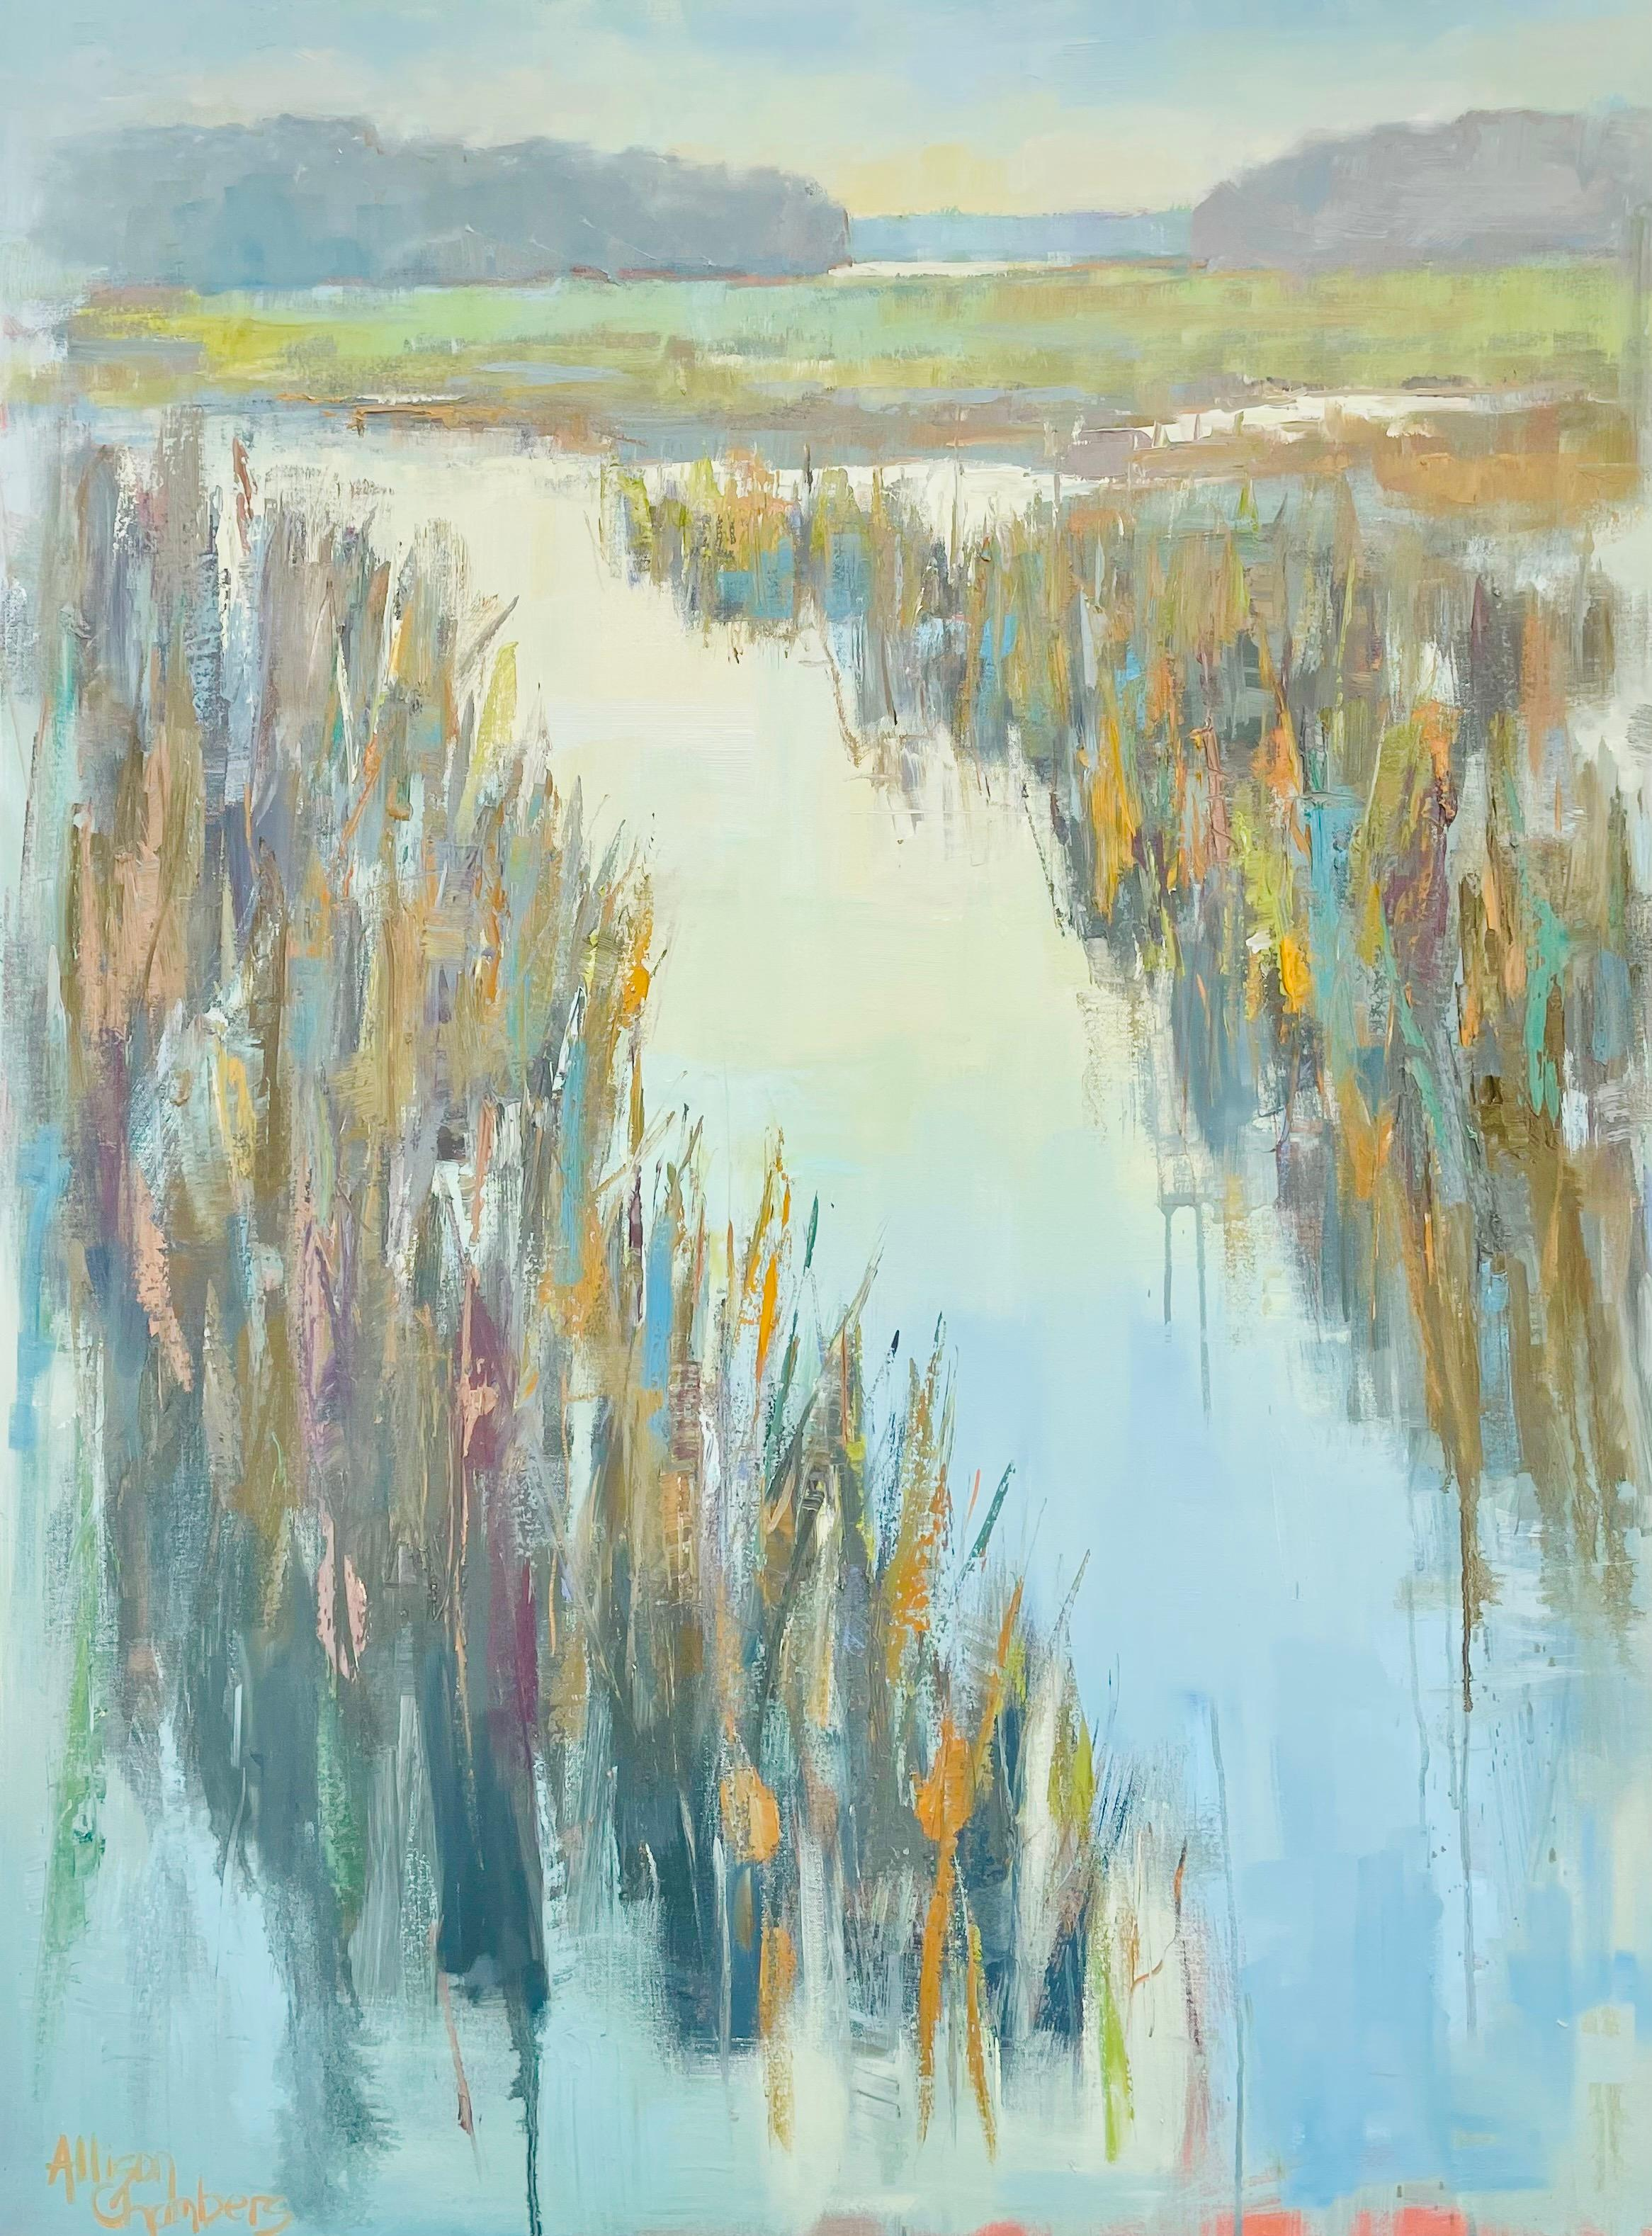 On and On by Allison Chambers, Large Framed Impressionist Landscape Painting